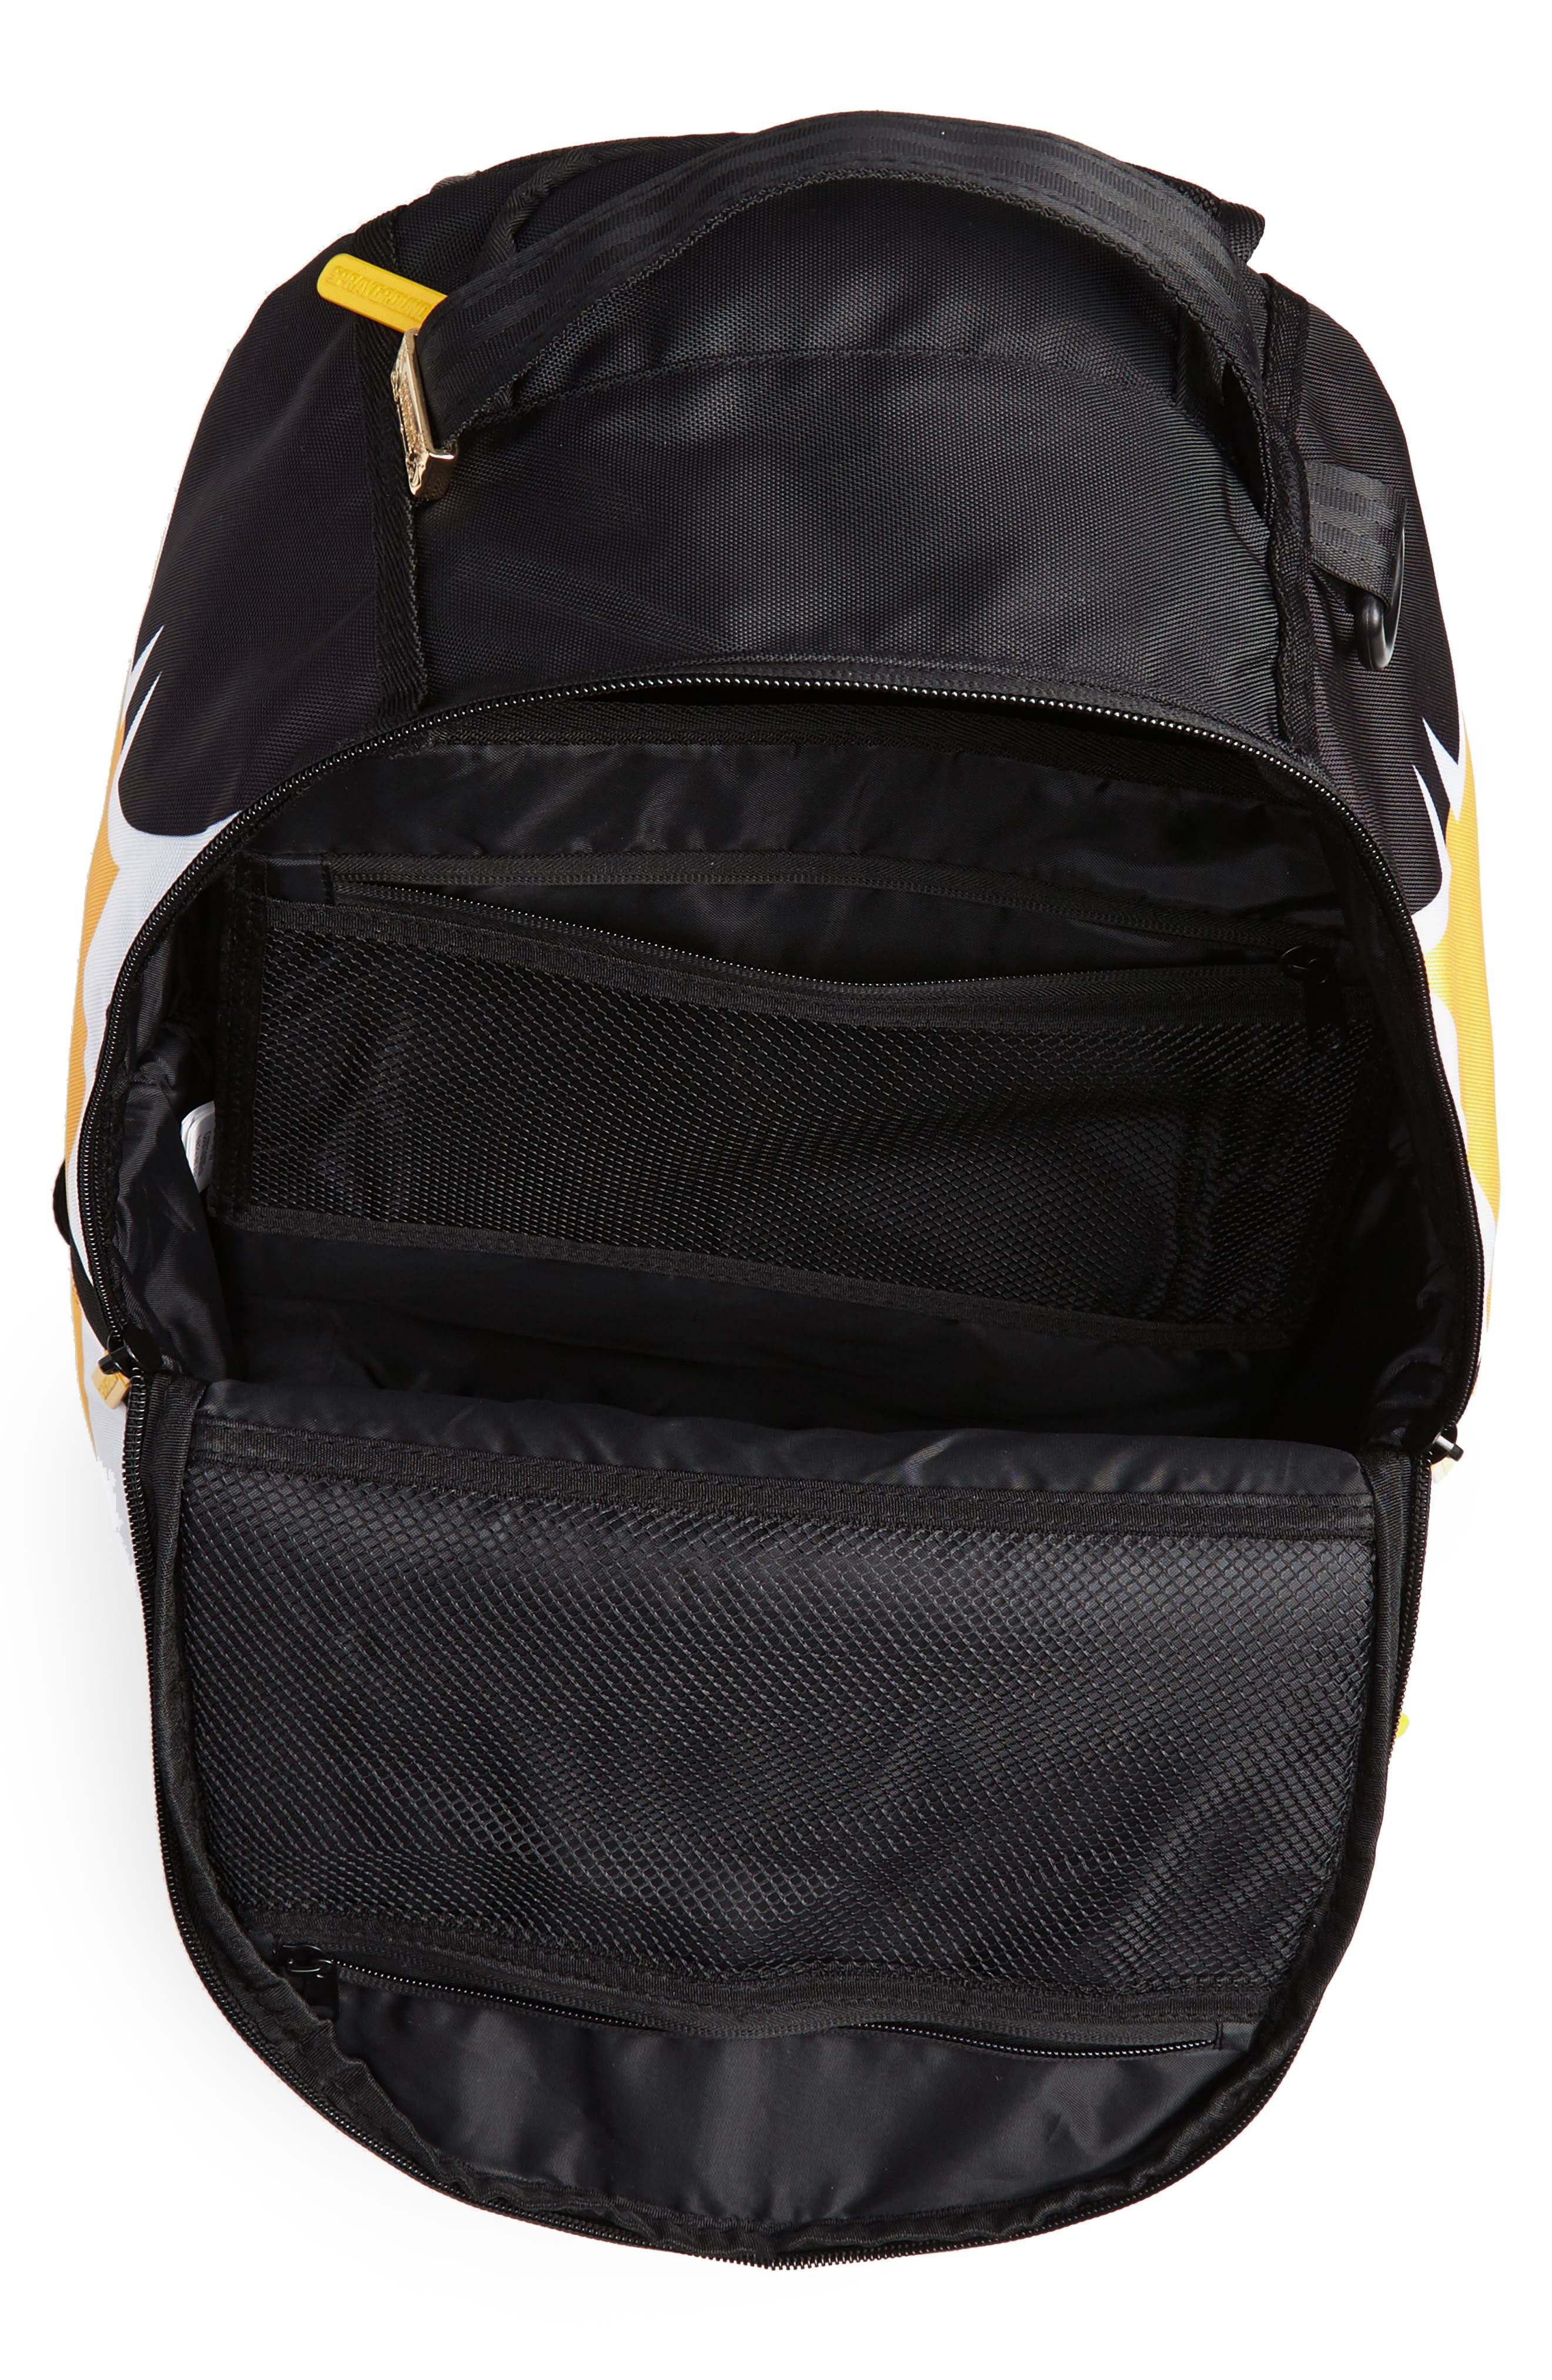 Ball Jersey Backpack,                             Alternate thumbnail 4, color,                             BLACK